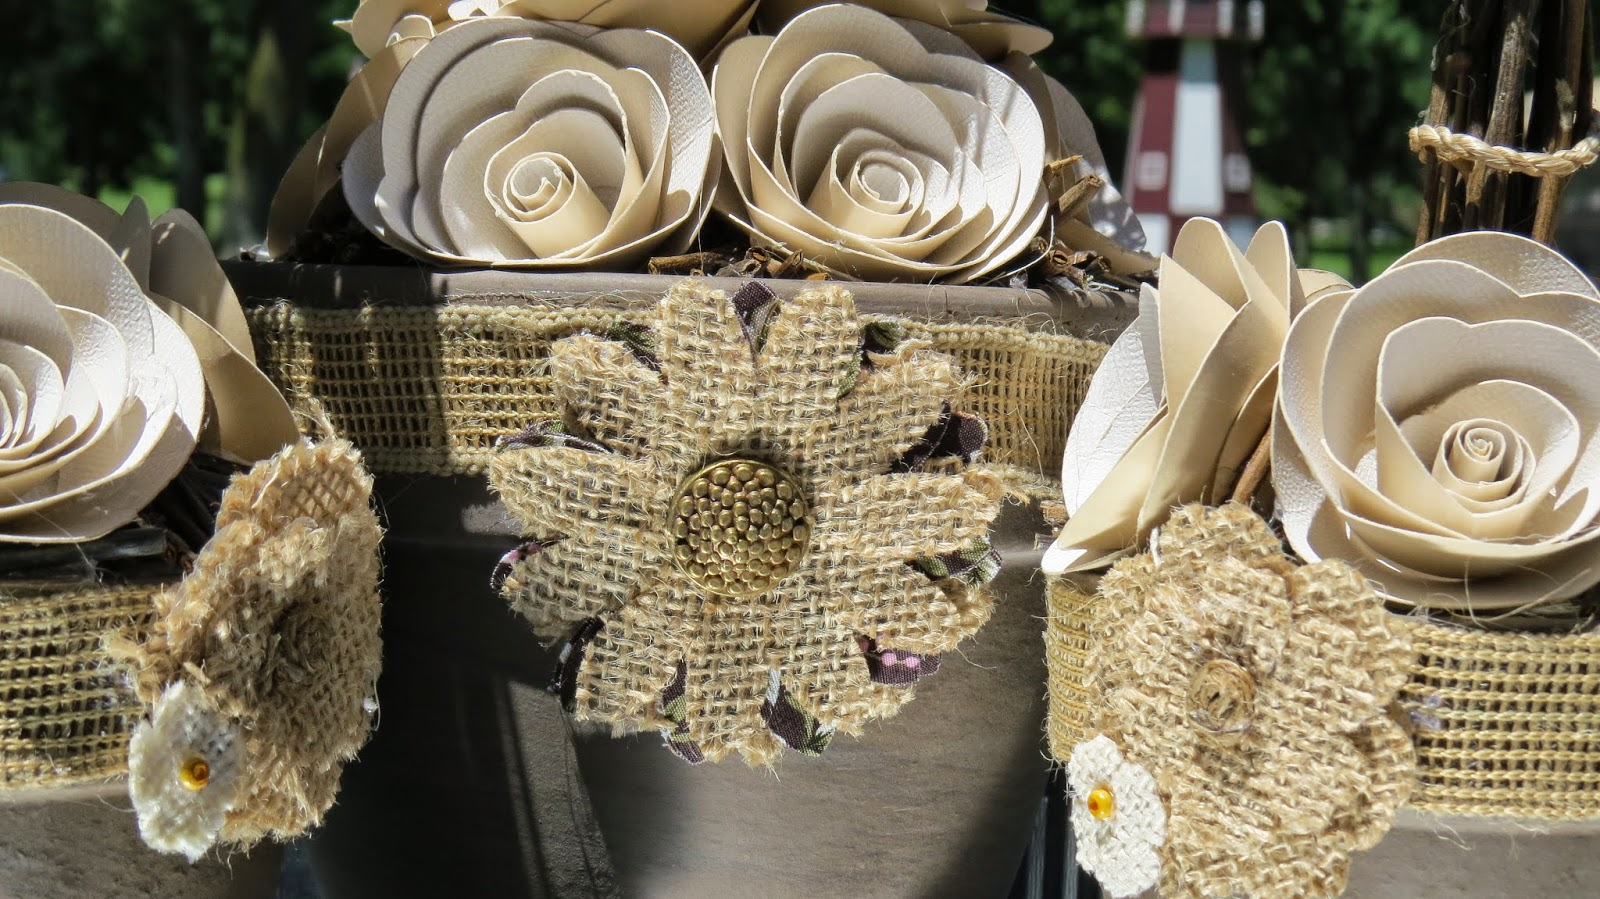 Clay Pots, Burlap, Paper Rose, Silhouette Cameo, Topiary